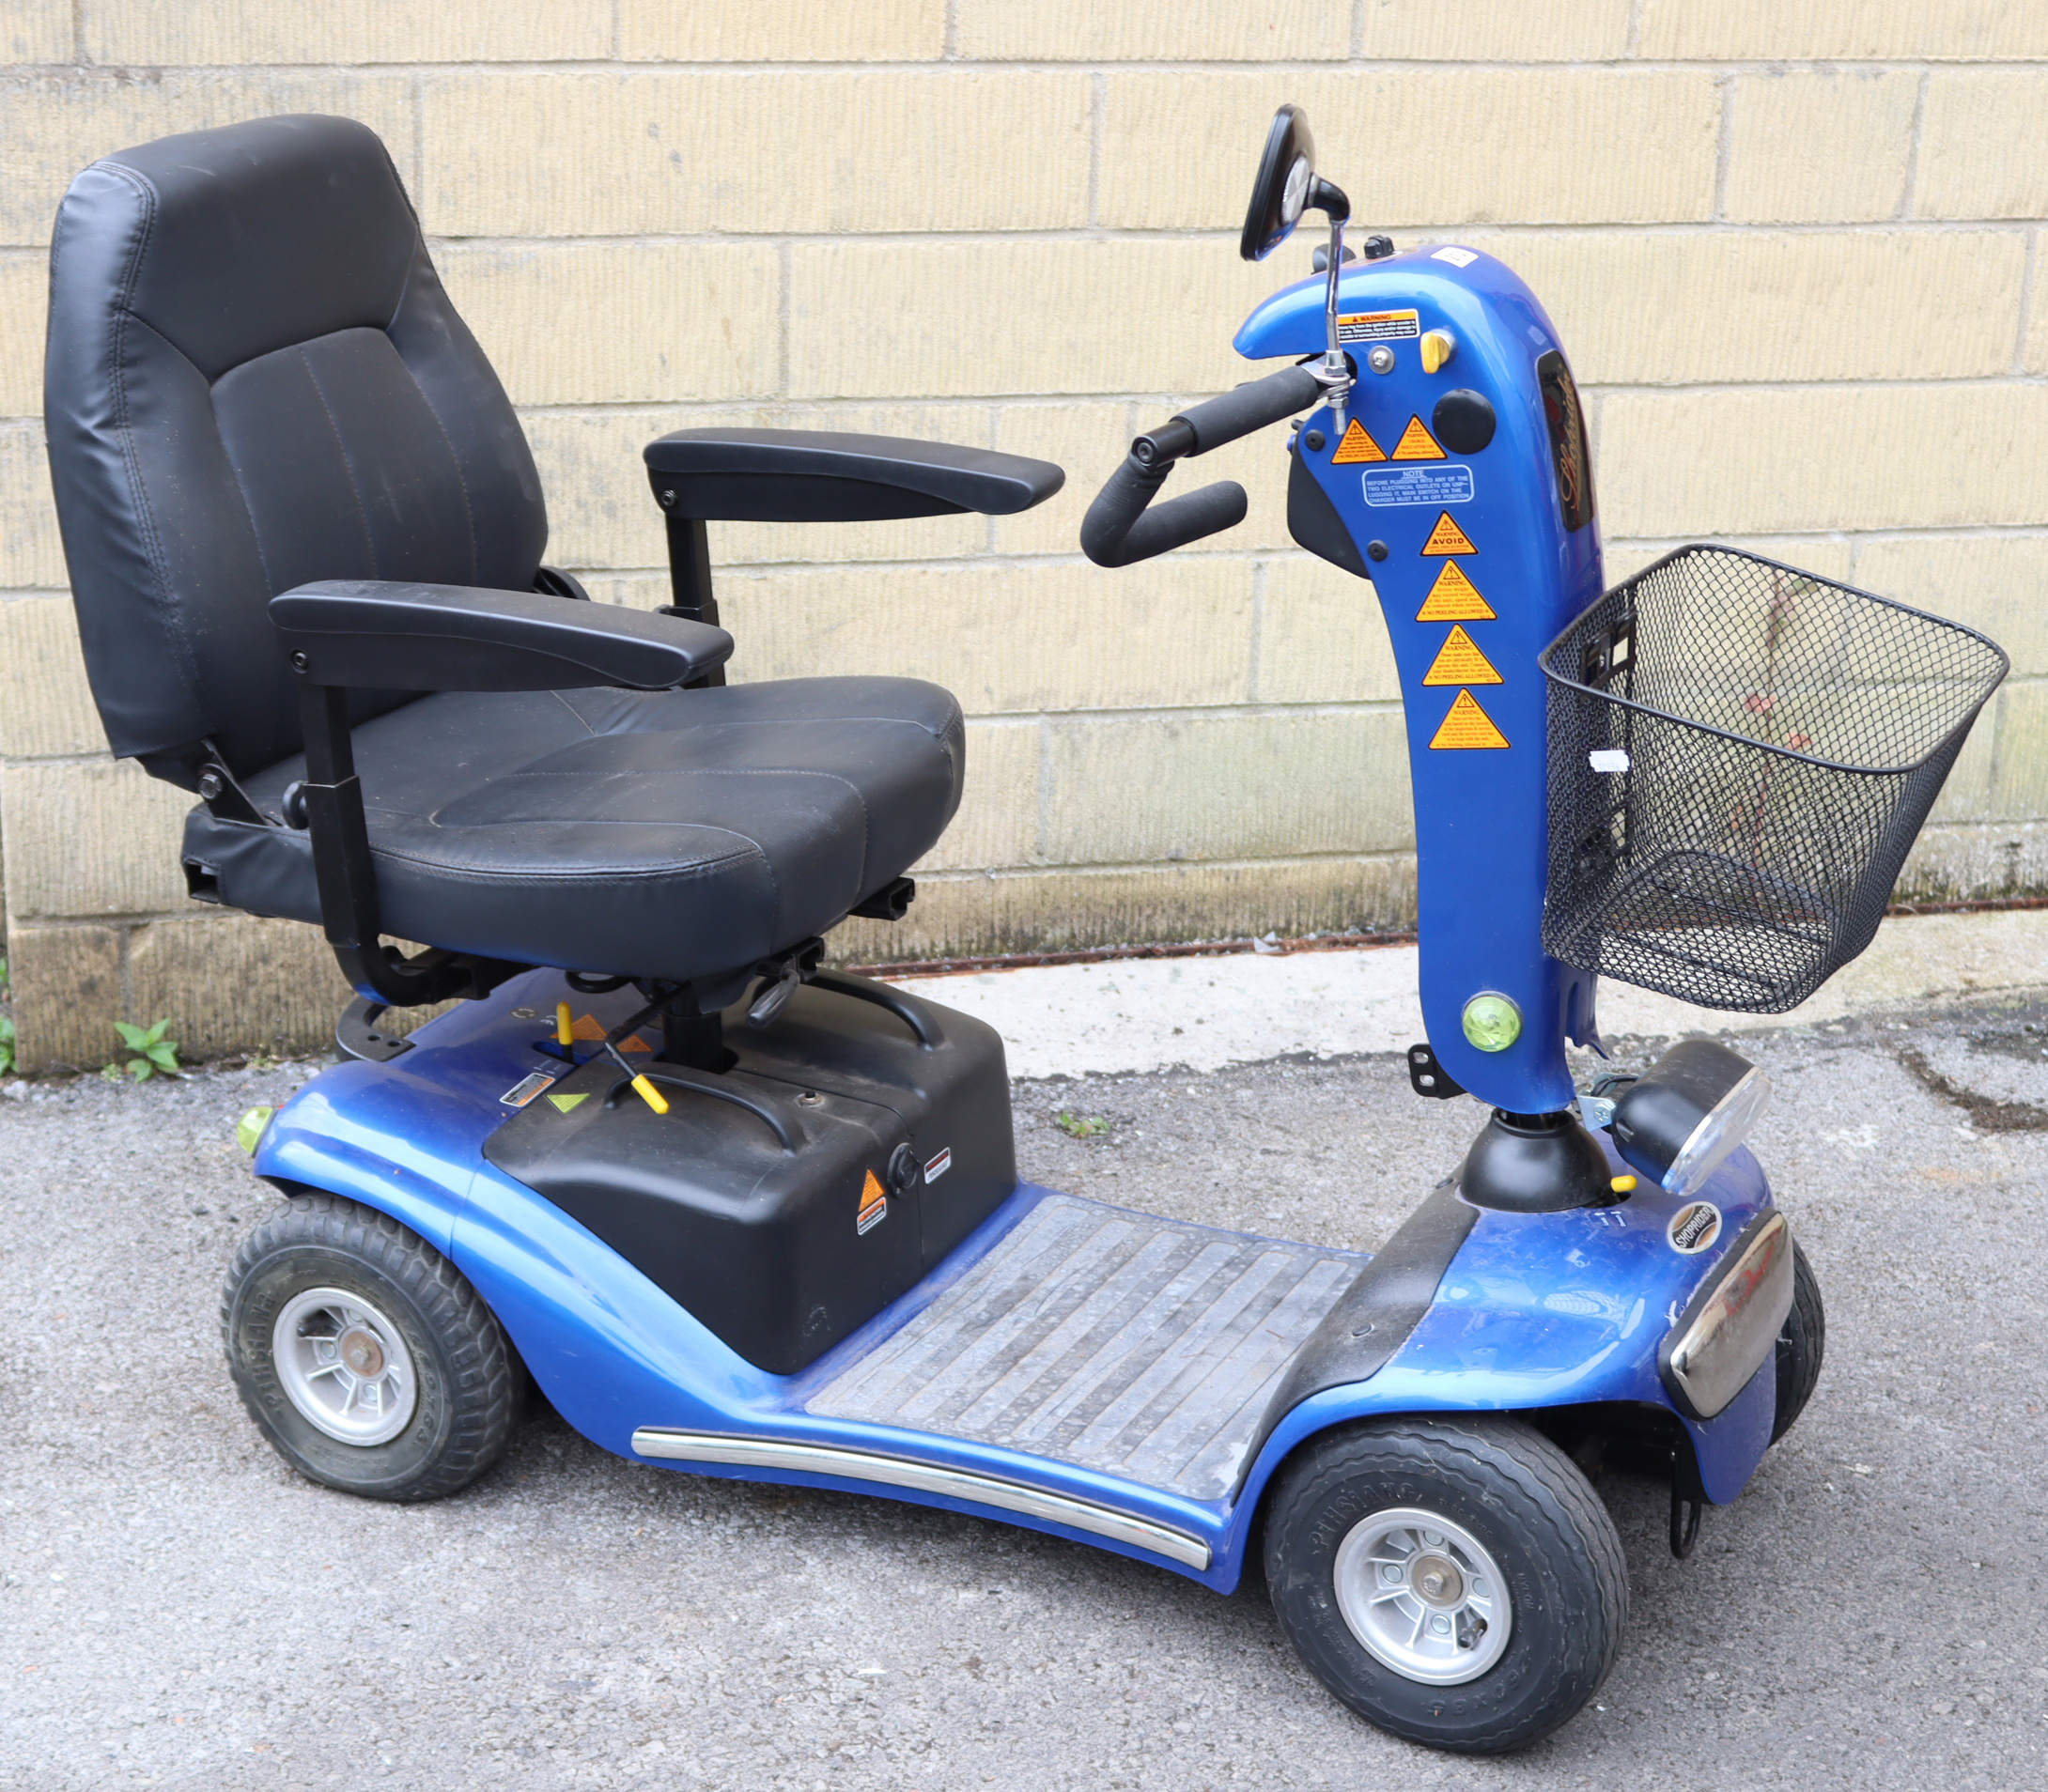 A Shoprider mobility scooter with battery, charger, & key.